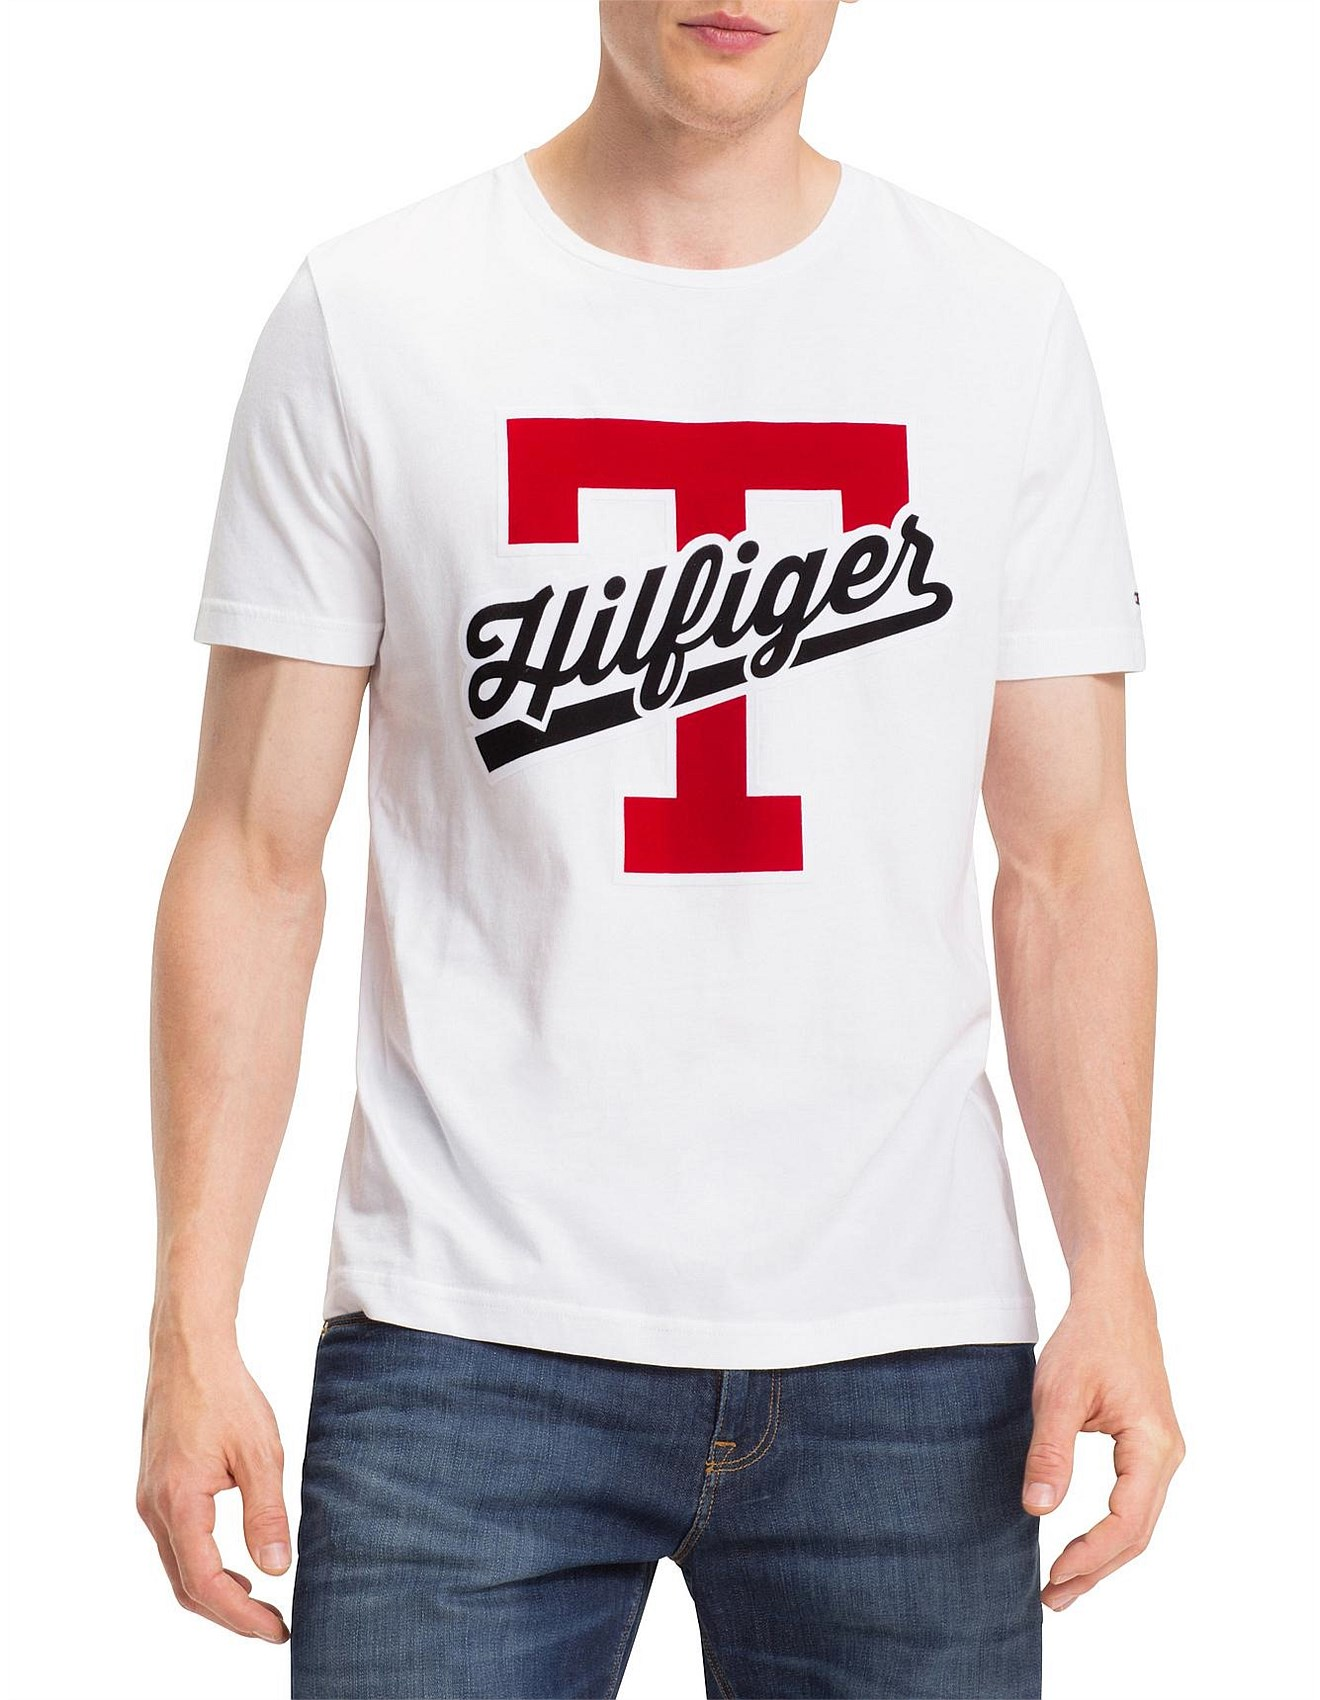 bef626fa2 Tommy Hilfiger | Buy Tommy Hilfiger Online | David Jones - T-SCRIPT LOGO TEE